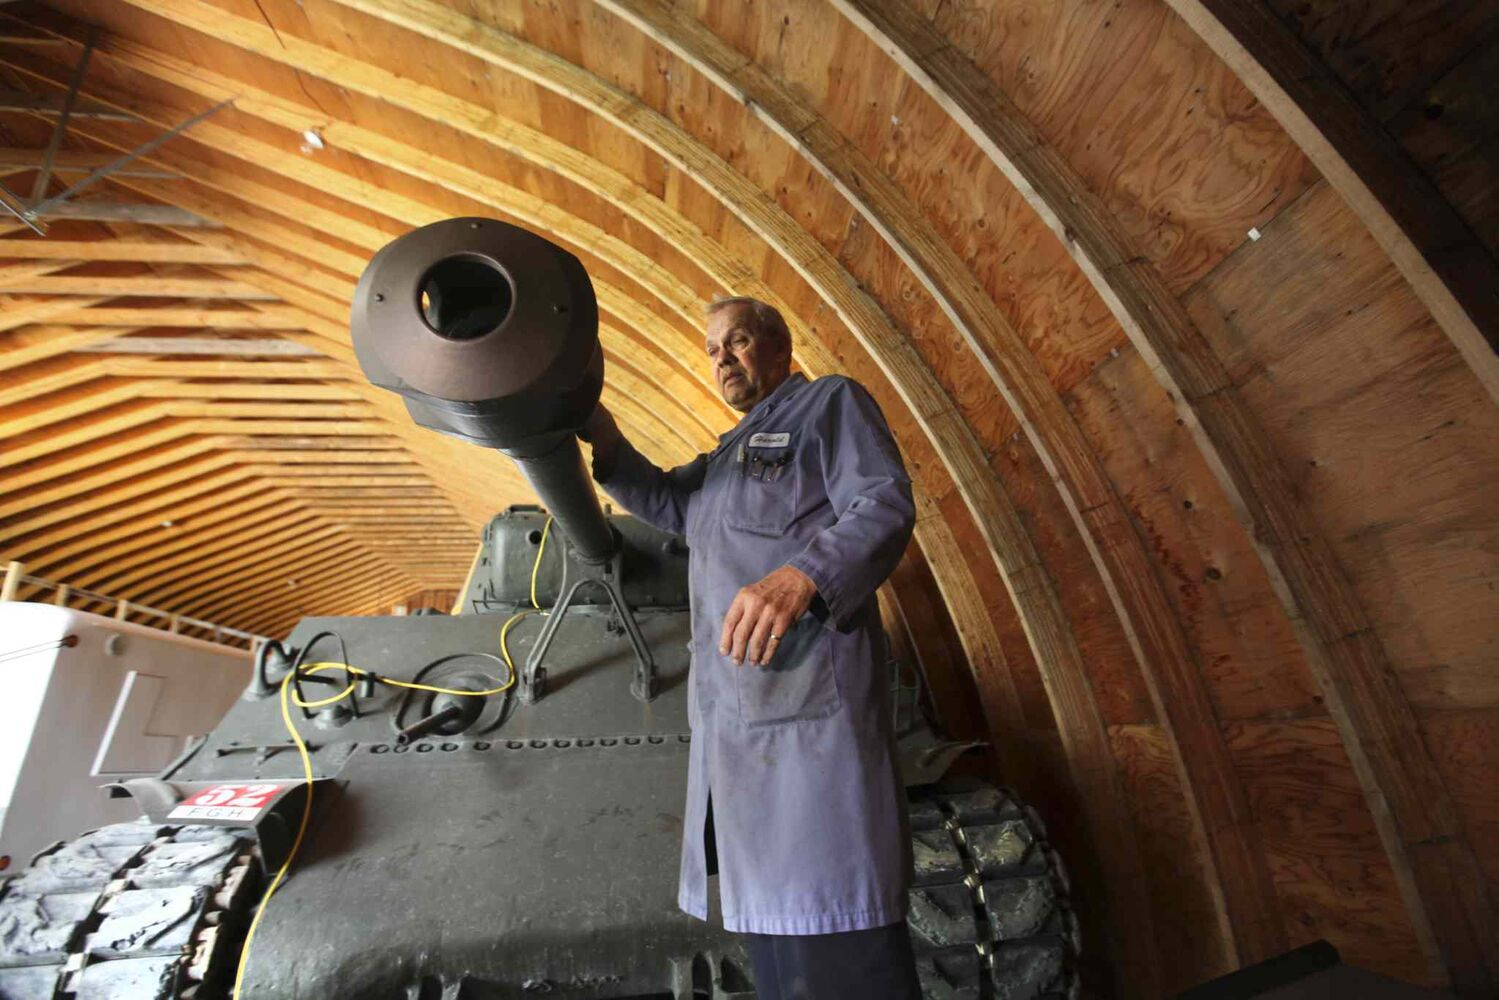 Harold Kihn has restored half a dozen military vehicles, including a 1944 Sherman tank. Military vehicles will be on display at the 60th Manitoba Threshermen's Reunion & Stampede in Austin July 24-27. (RUTH BONNEVILLE / WINNIPEG FREE PRESS)